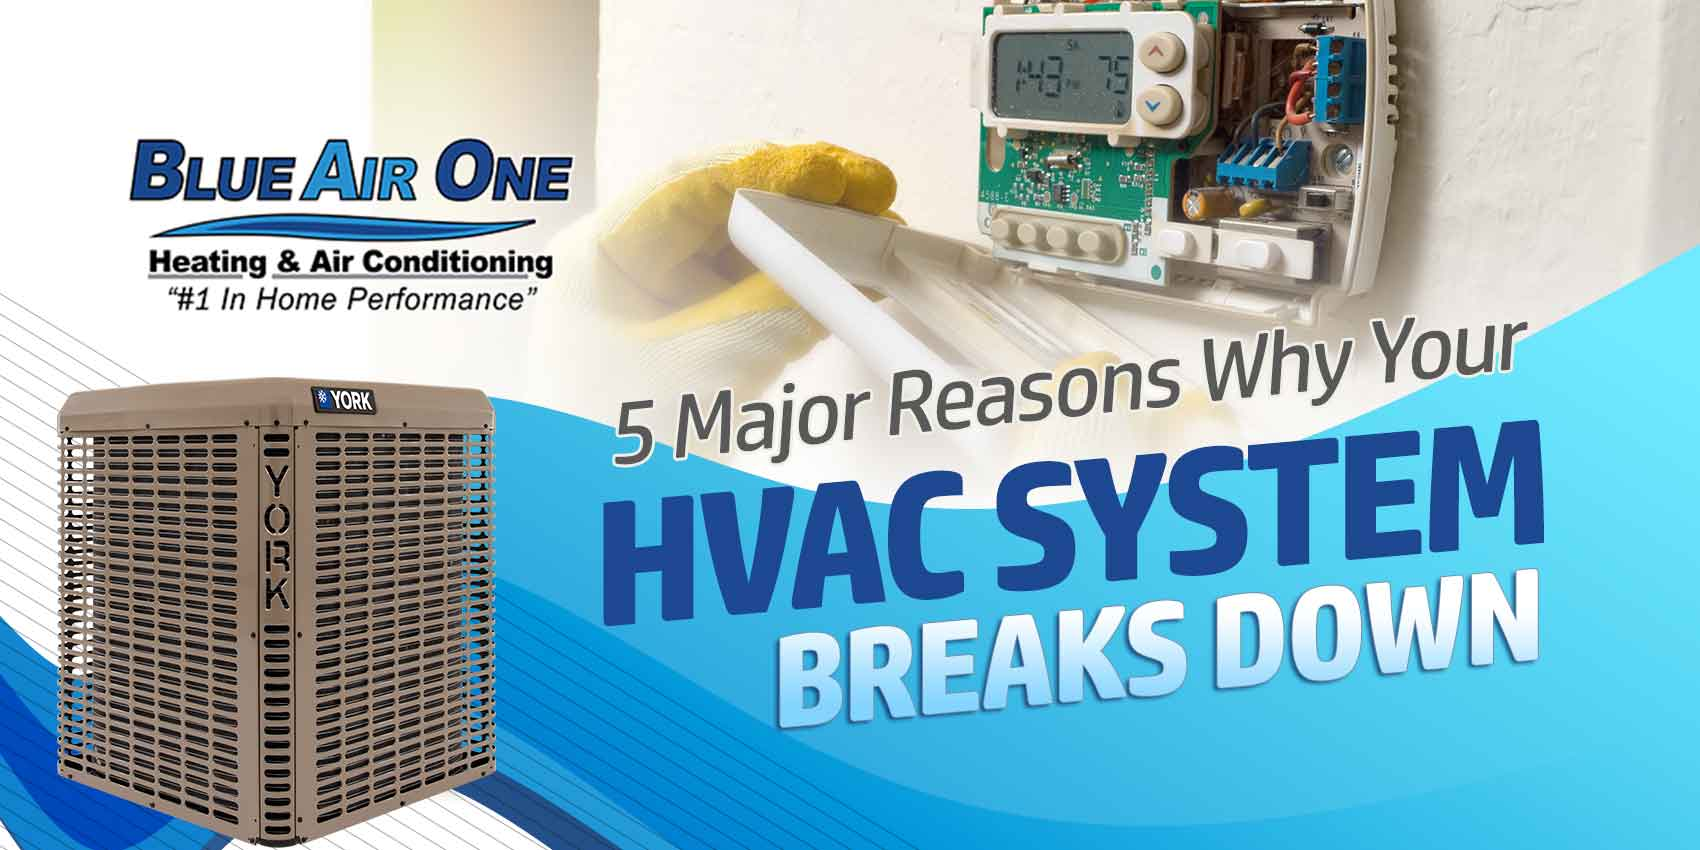 5 Major Reasons Why Your HVAC System Breaks Down